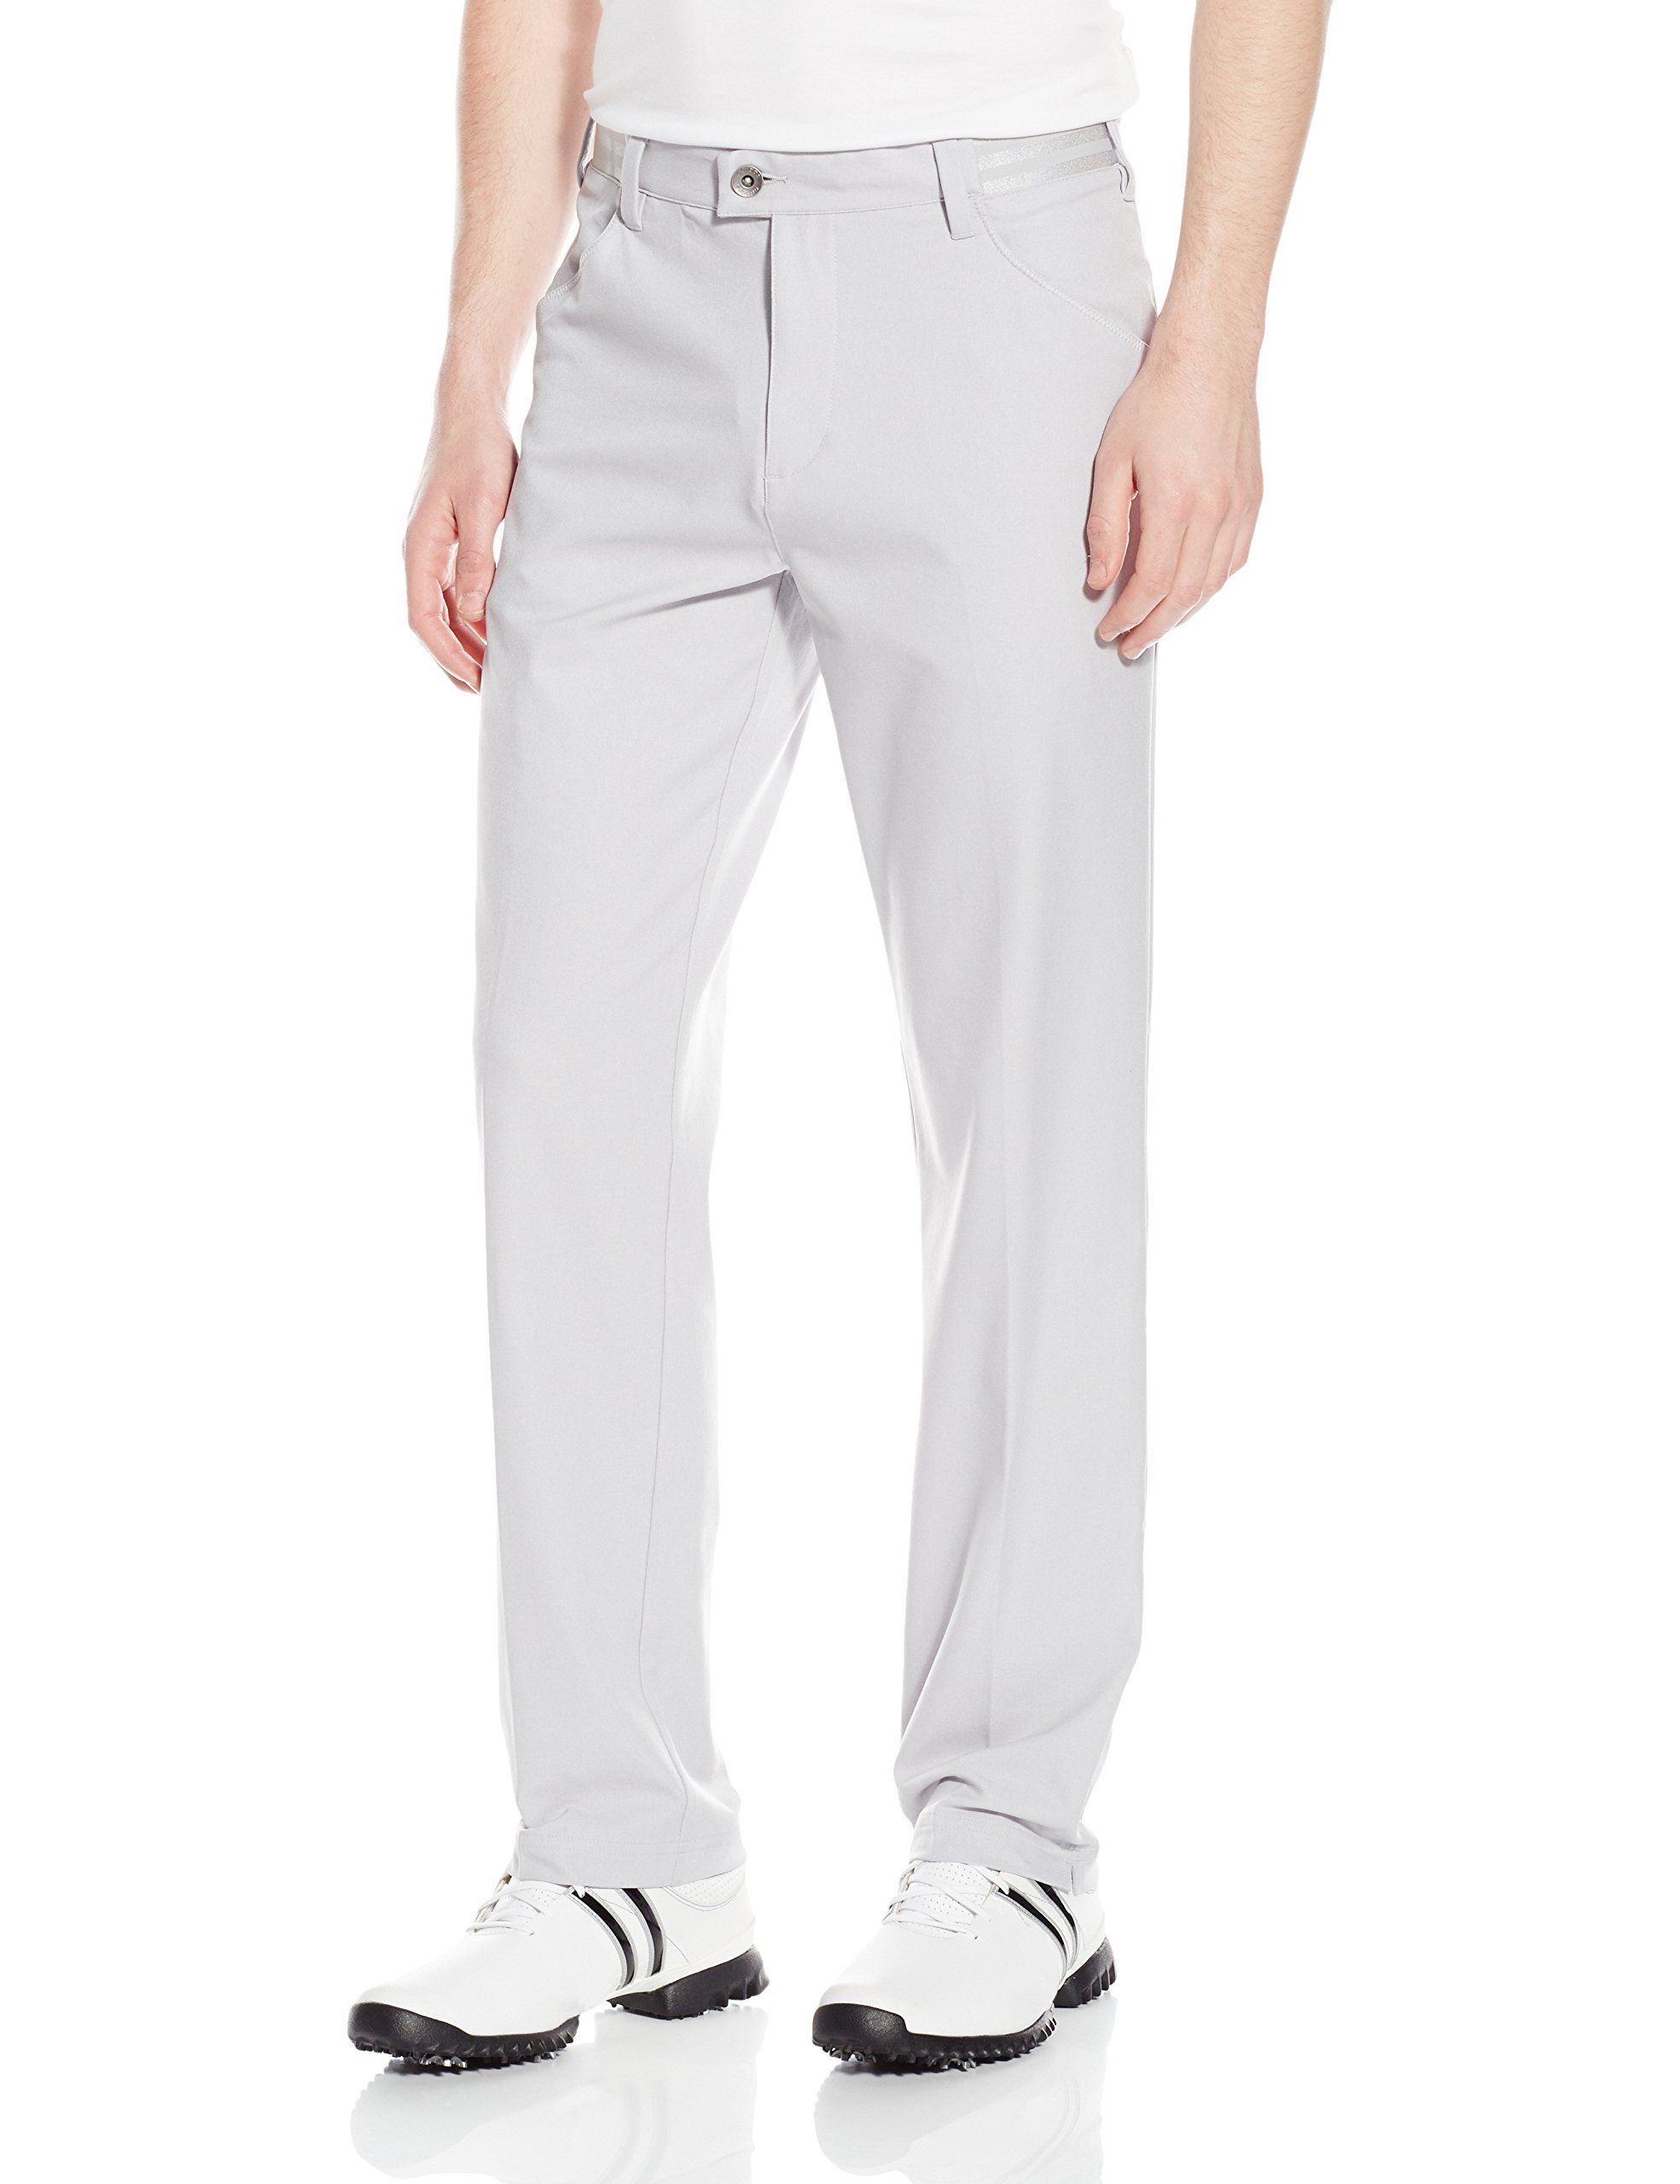 adidas 5 pocket golf pants